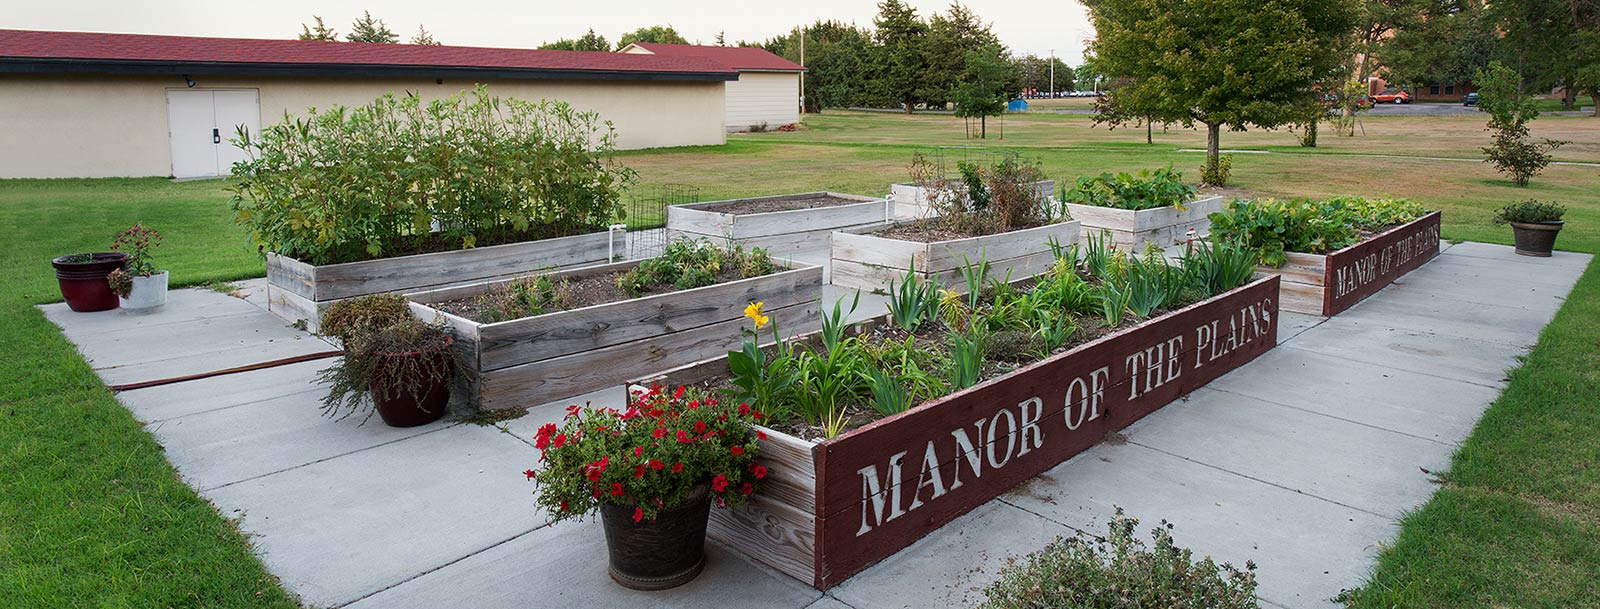 Senior living in Dodge City care about your health and wellness